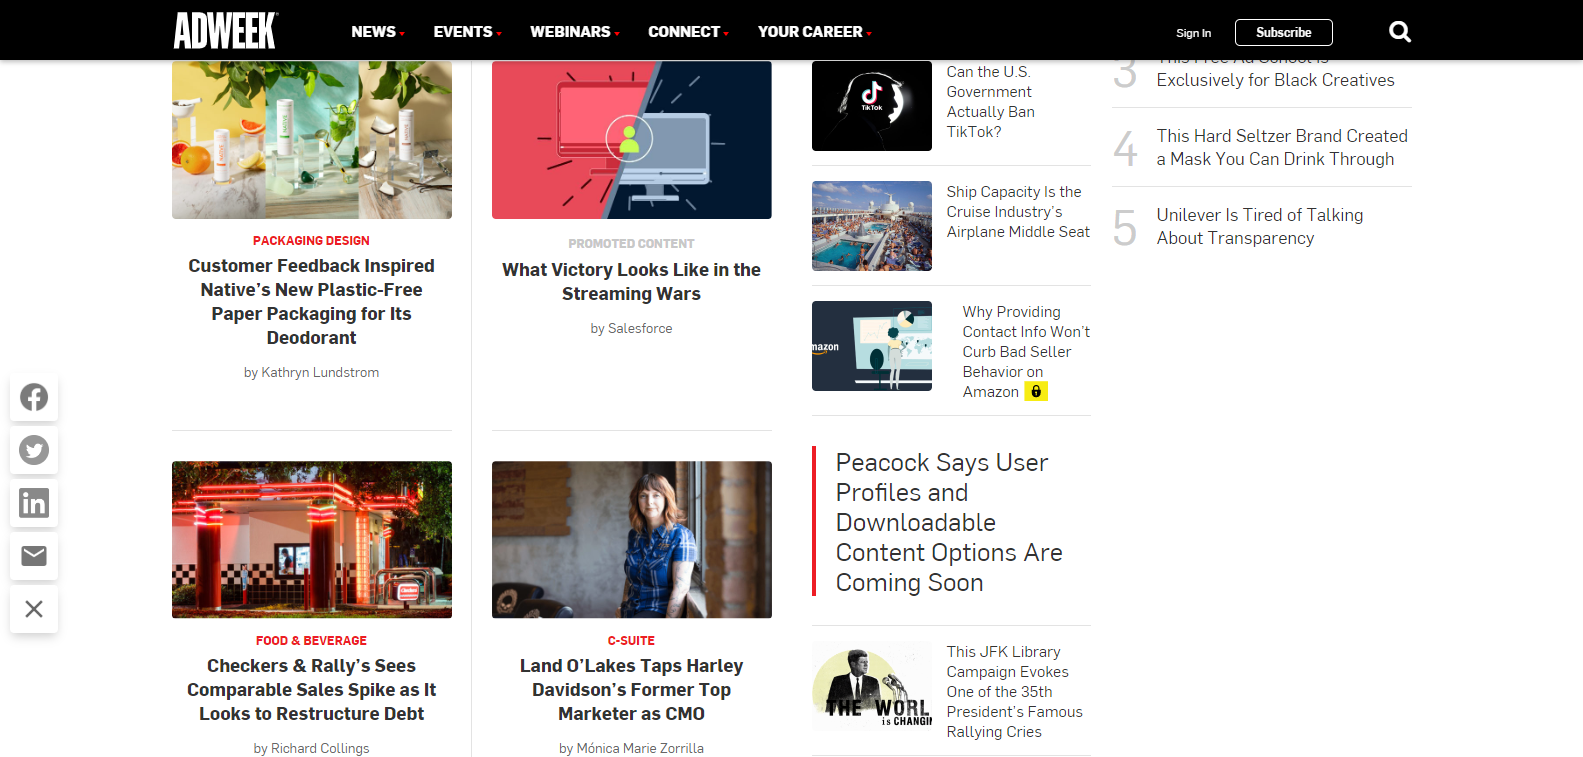 Sponsored content on Adweek news feed